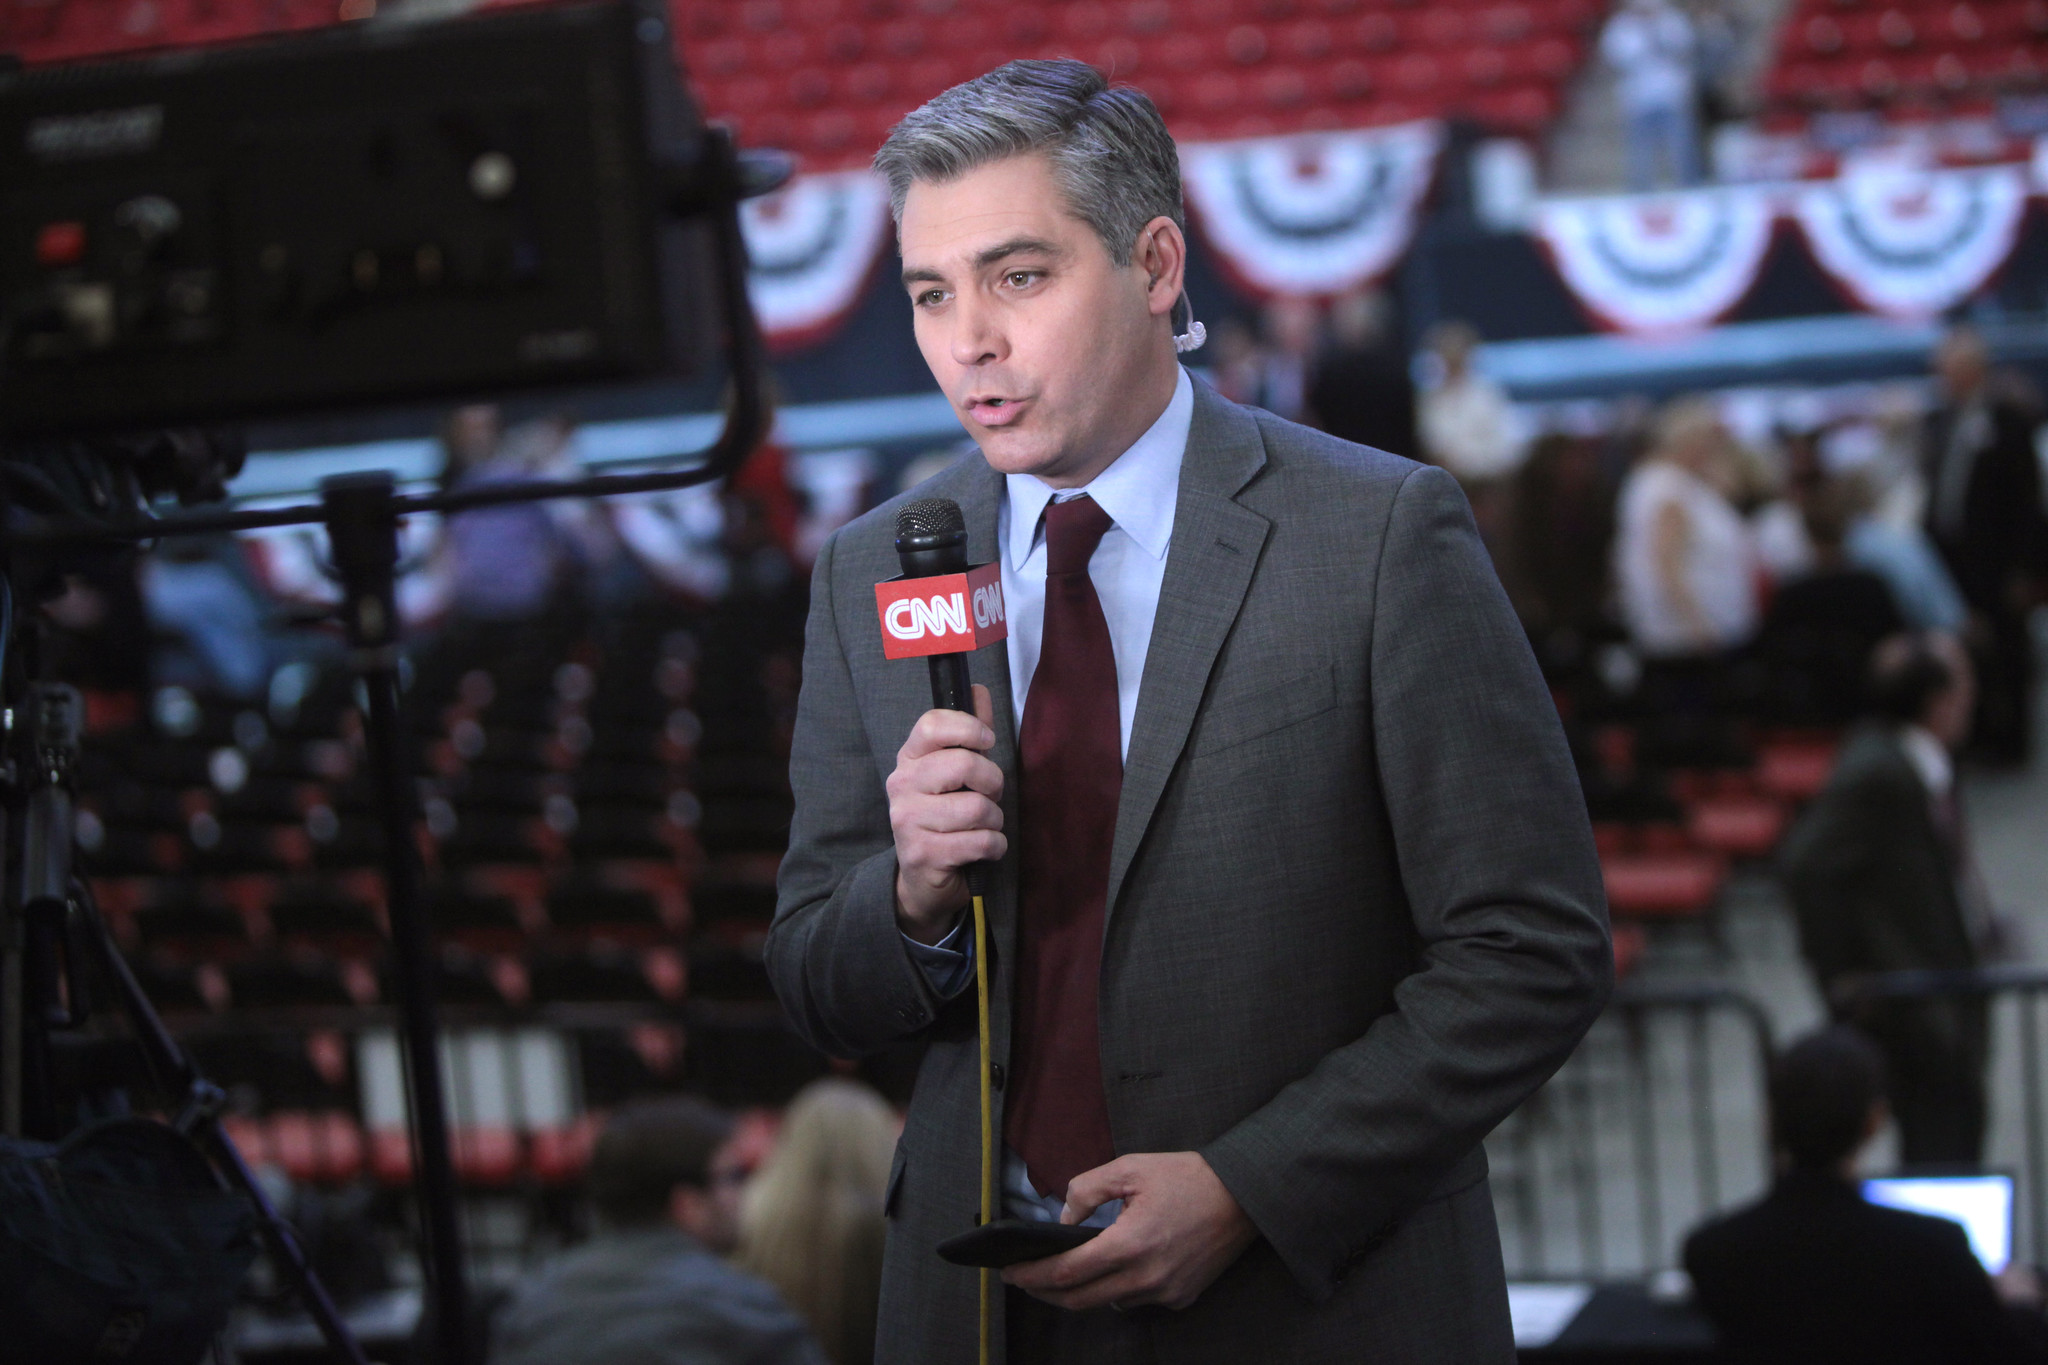 CNN's Jim Acosta compares Trump to Baghdad Bob, says he plays 'fast and loose' with facts